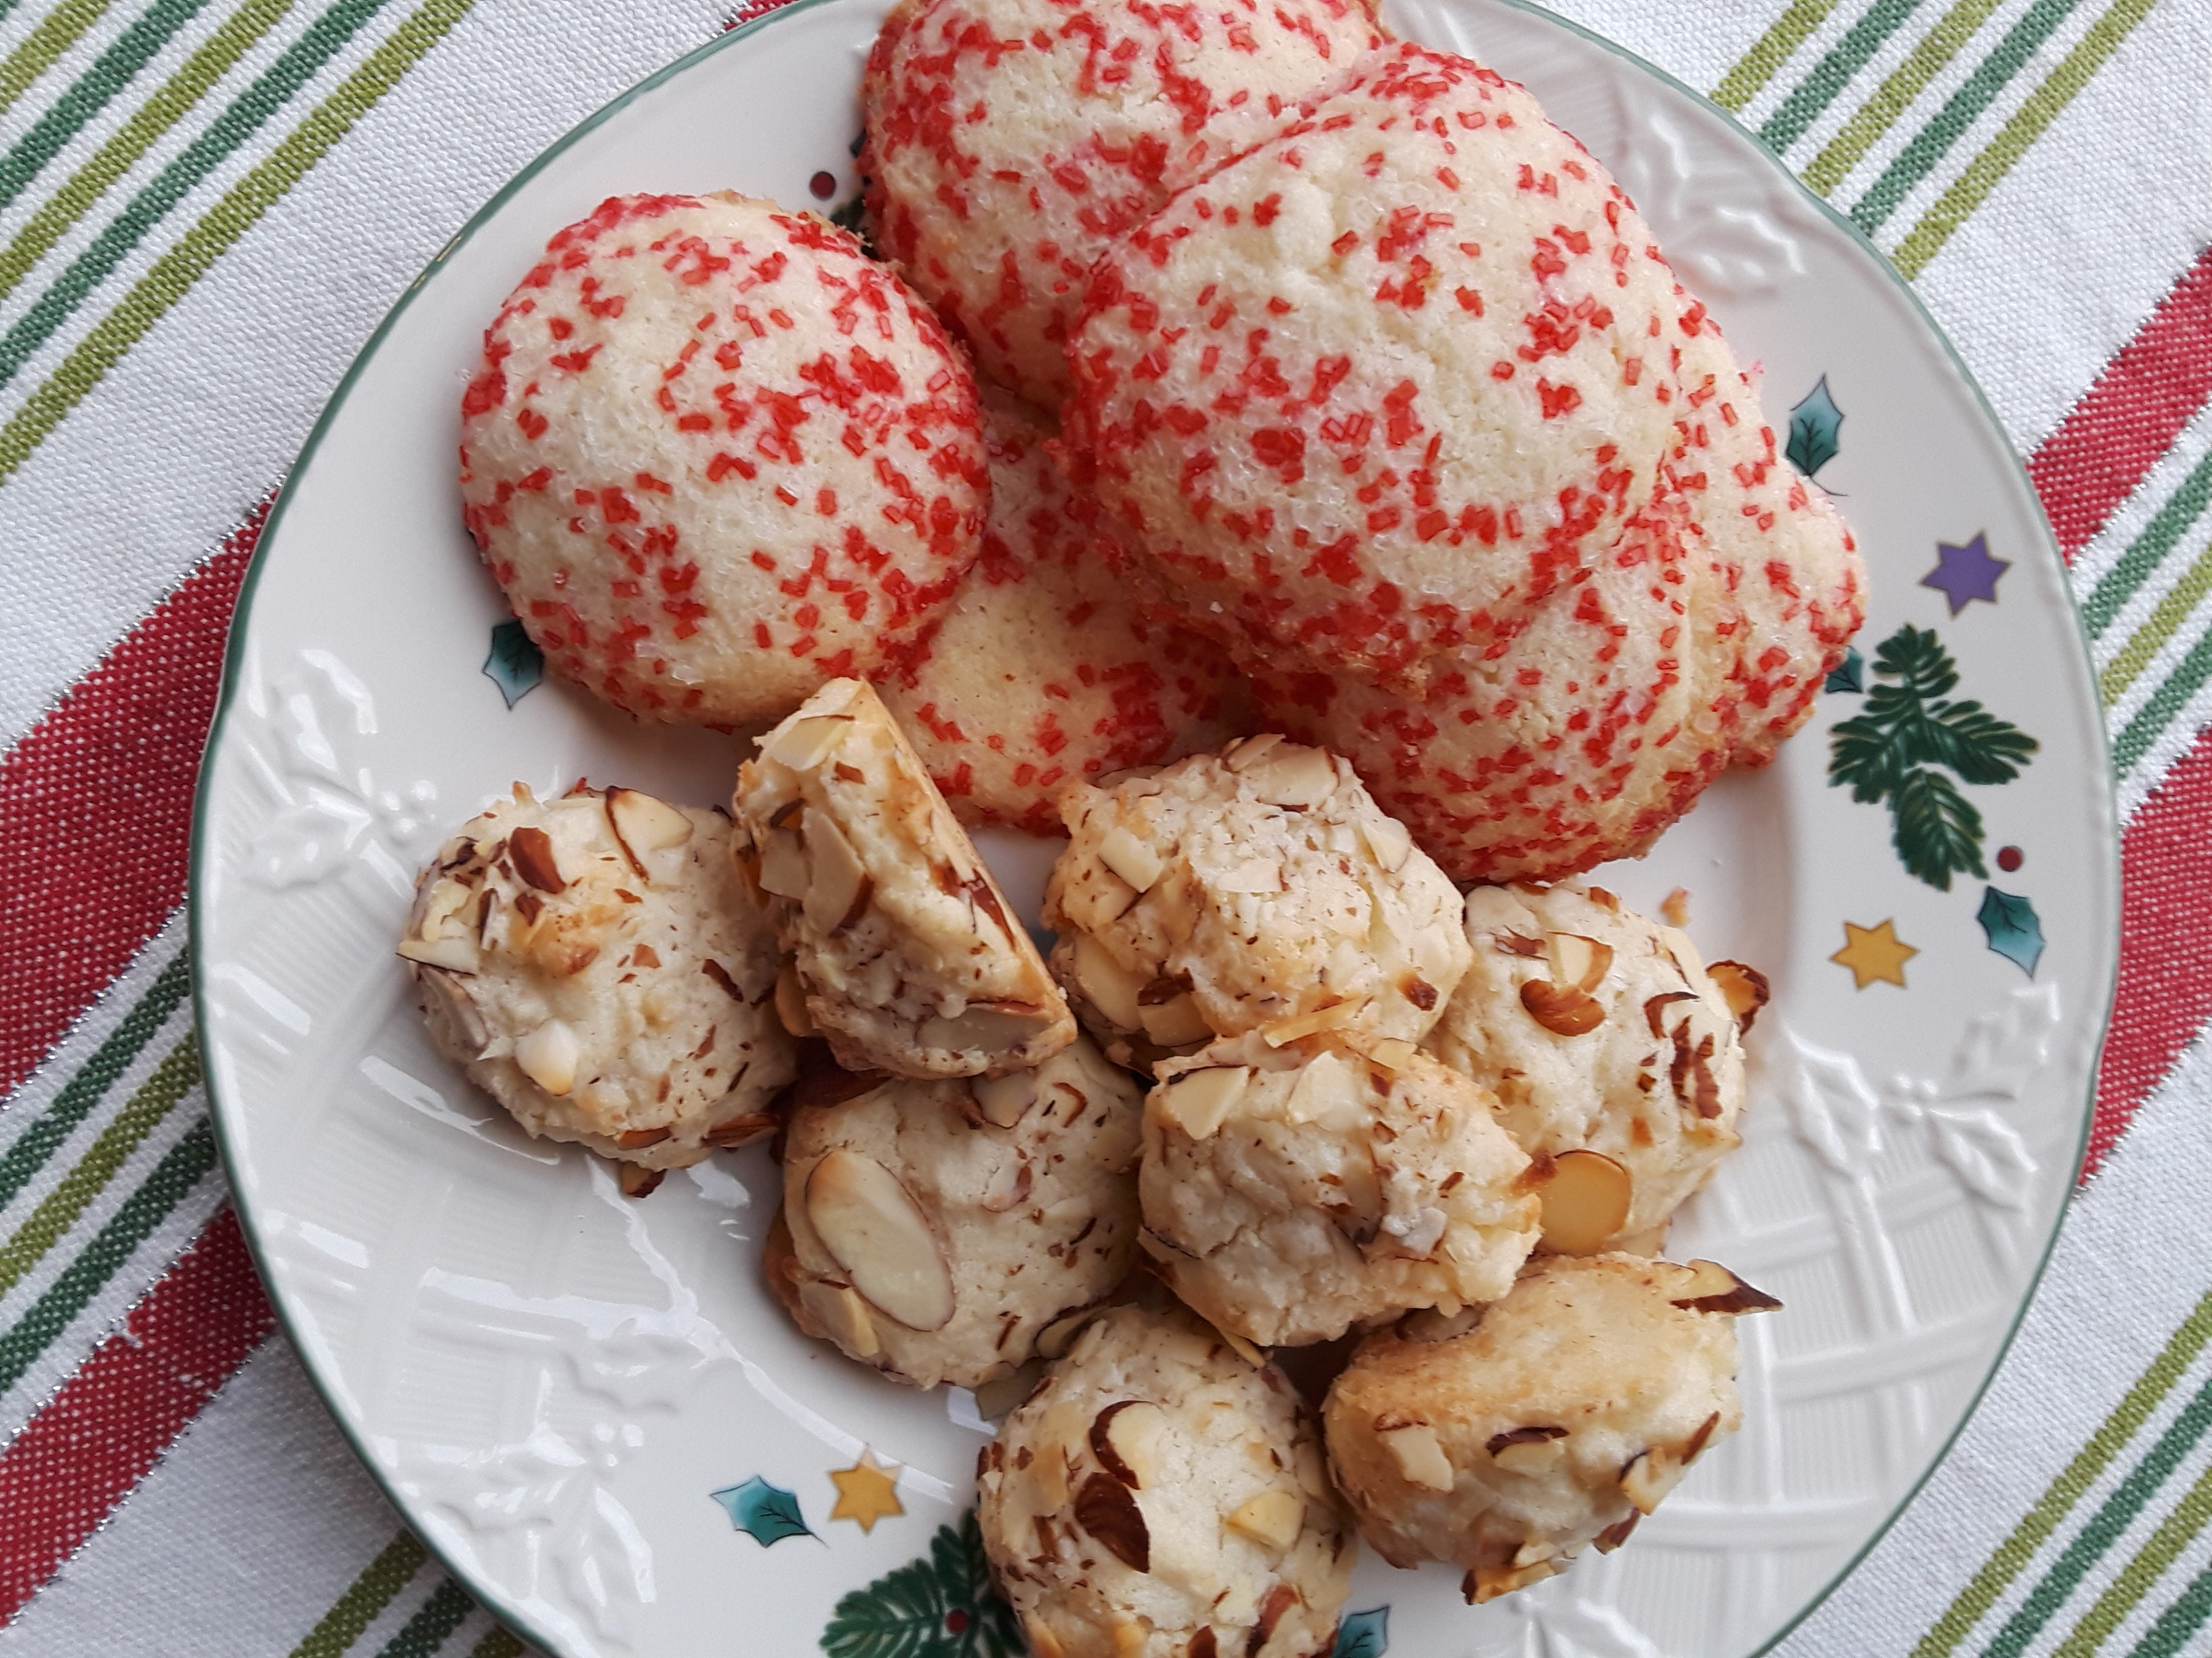 sprinkle cookies and almond cookies, gluten-free